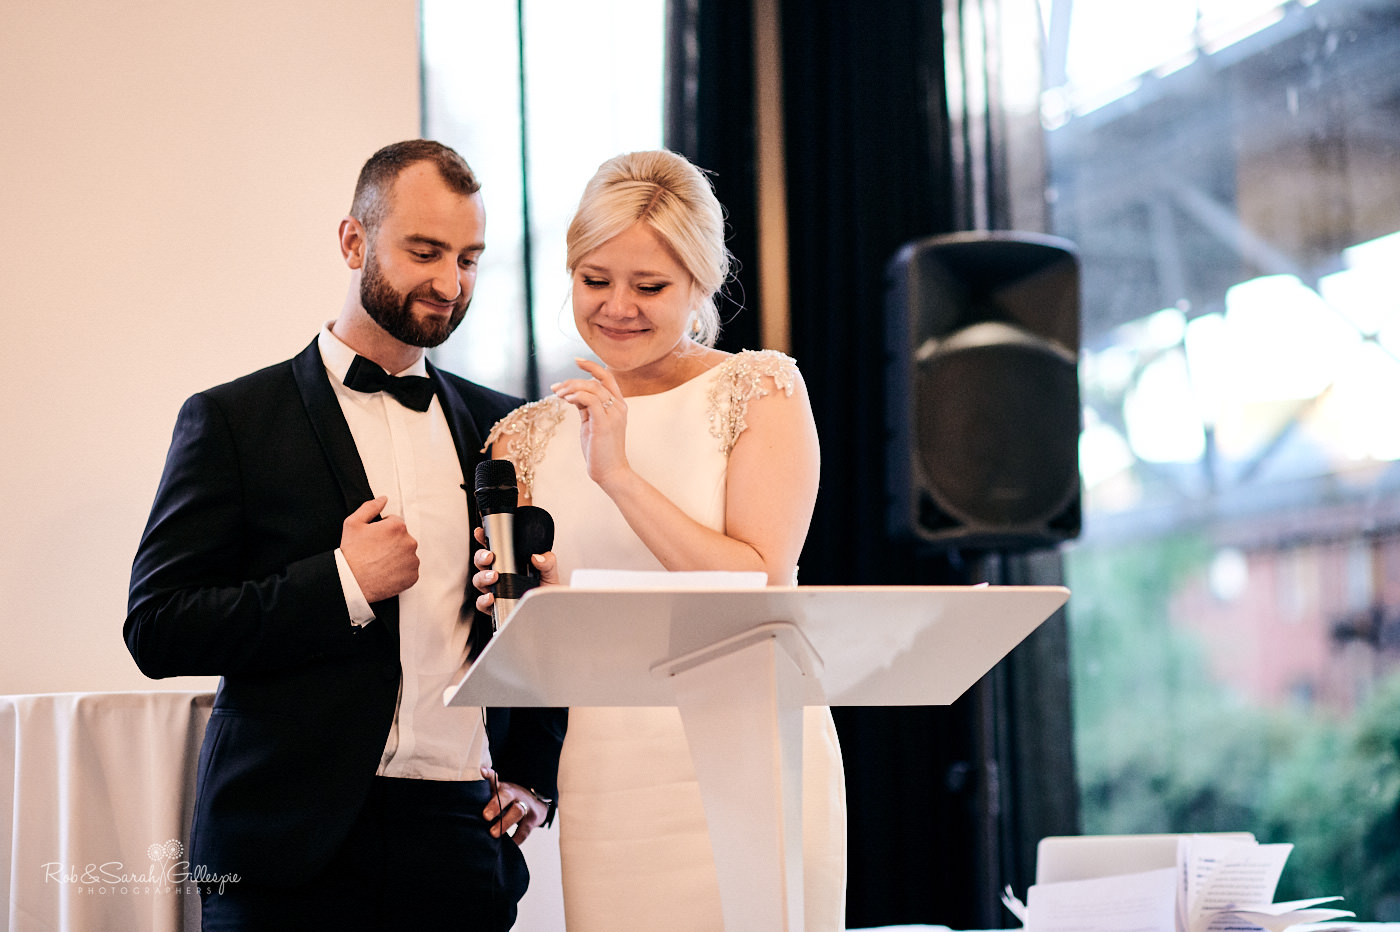 Emotional and heartfelt wedding speeches at Canalside wedding venue at The Cube in Birmimgham